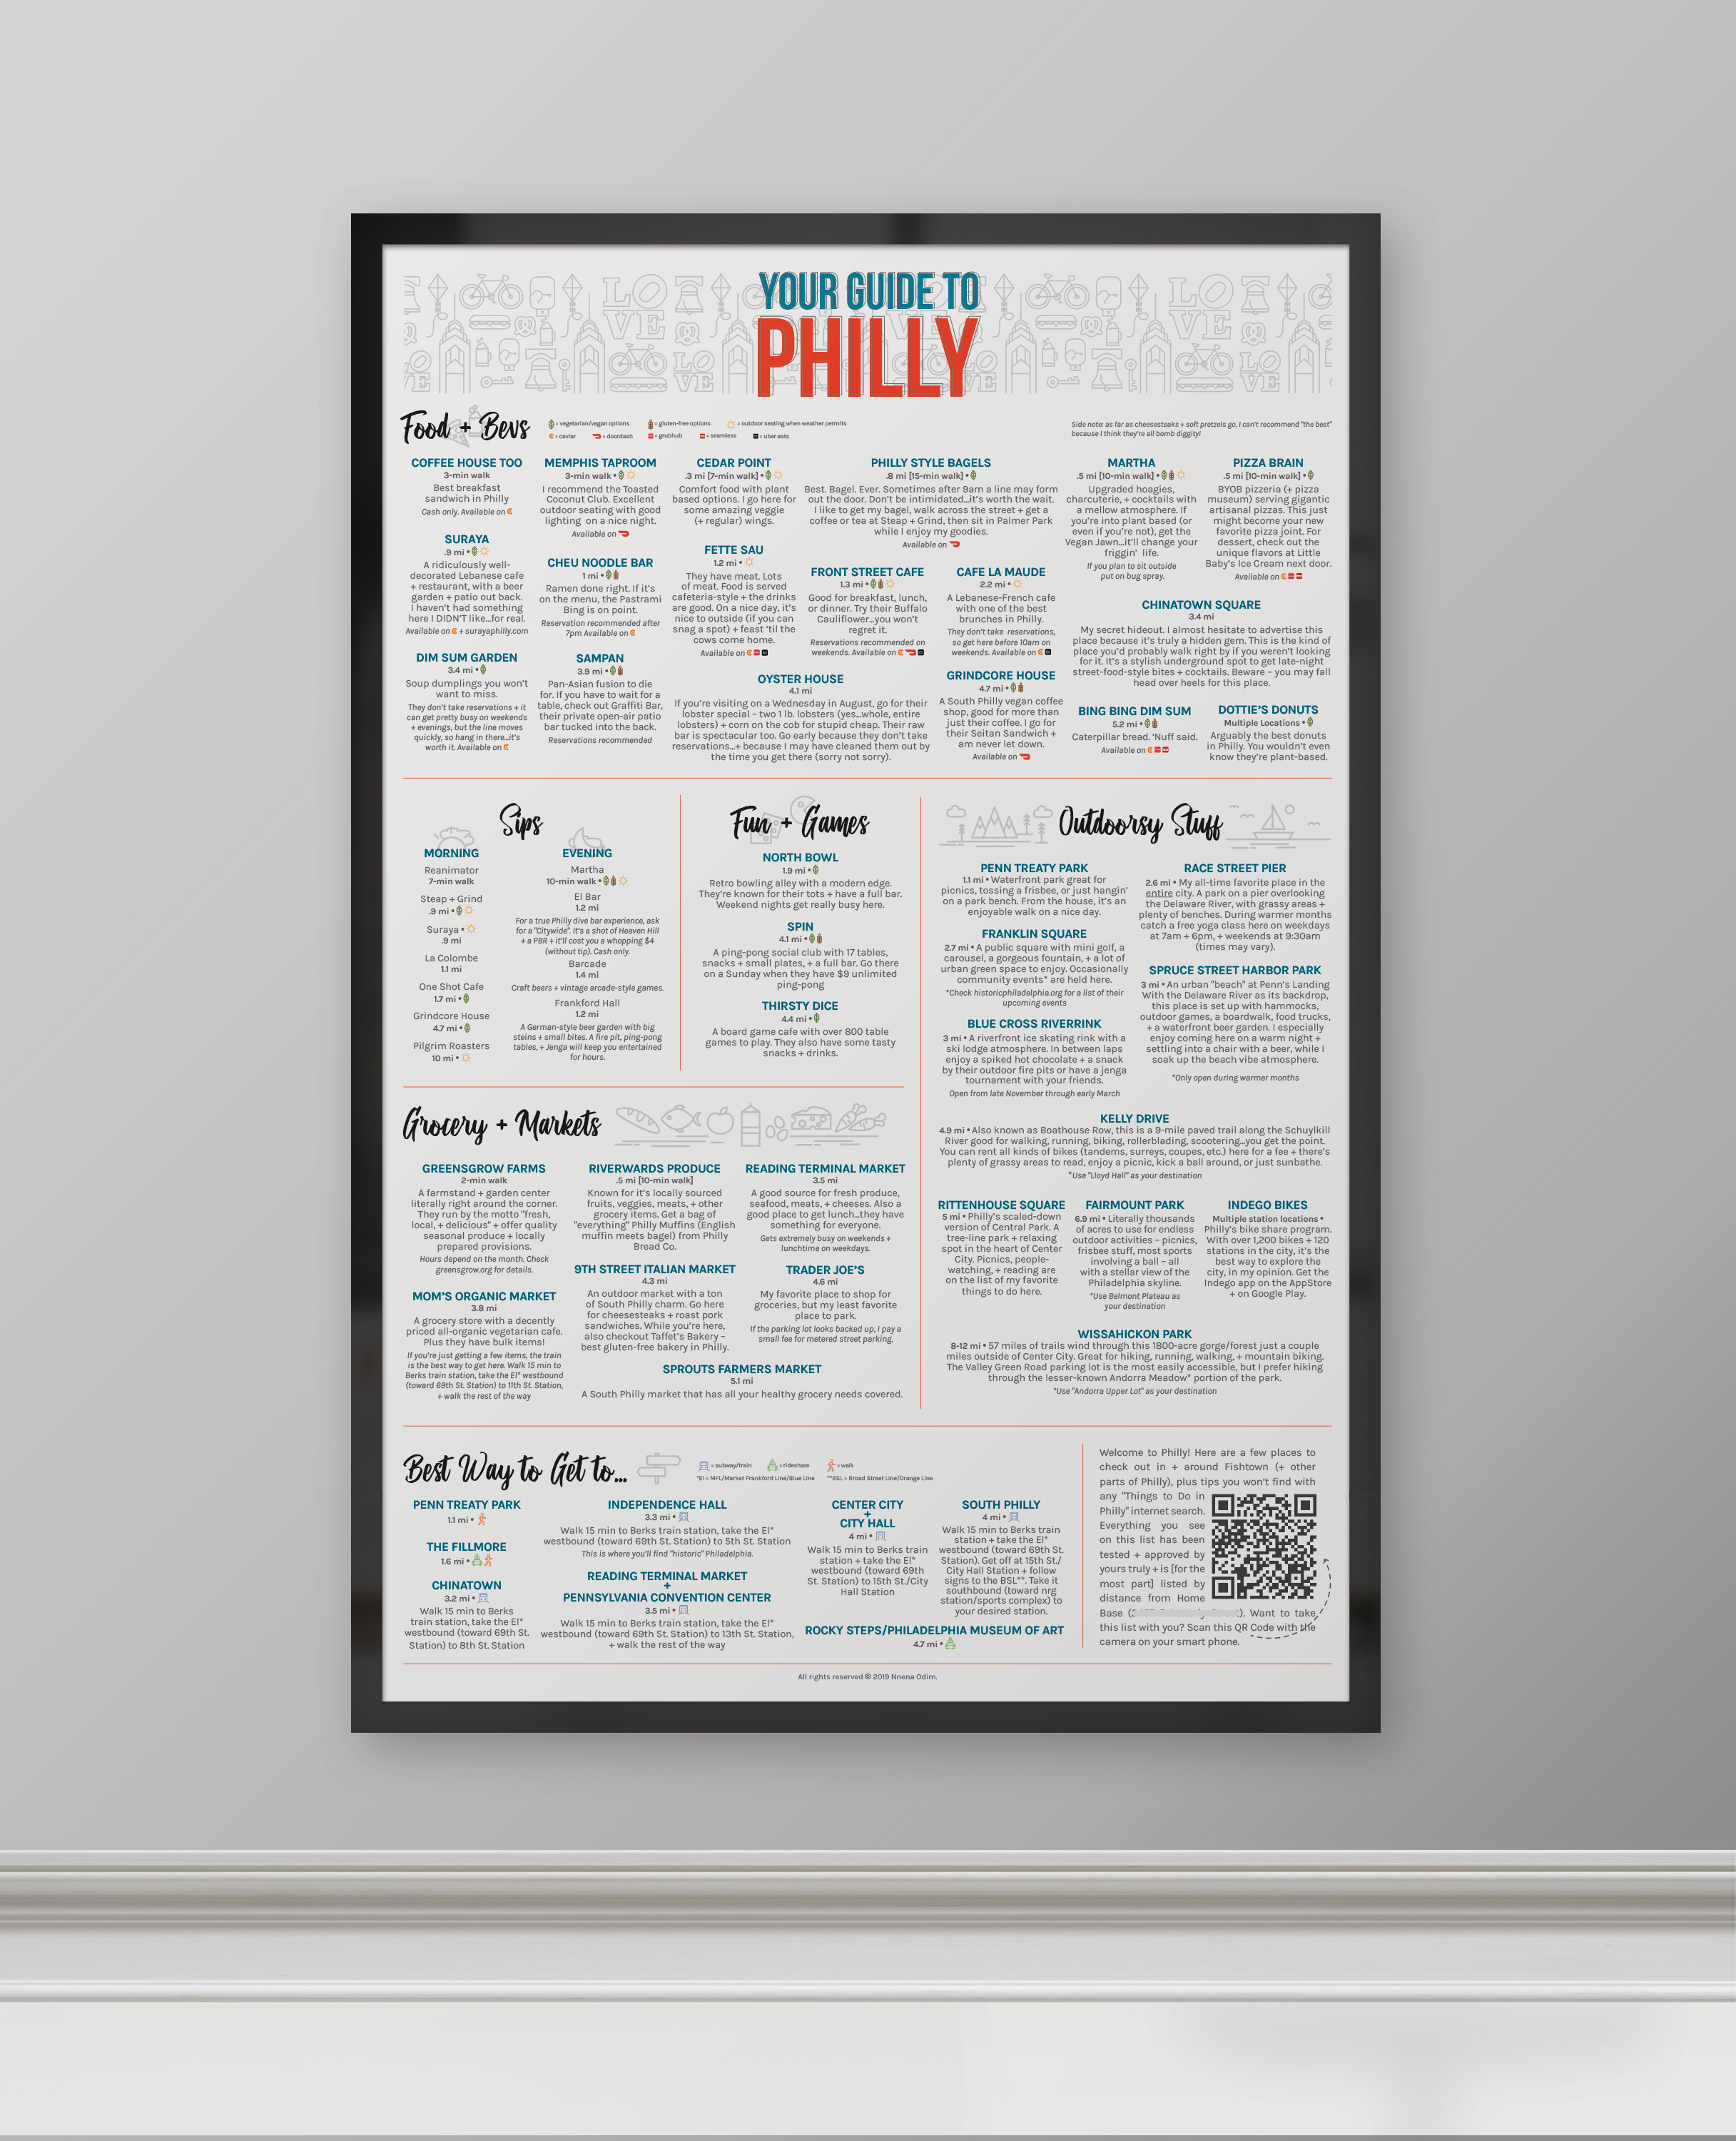 Philly City Guide